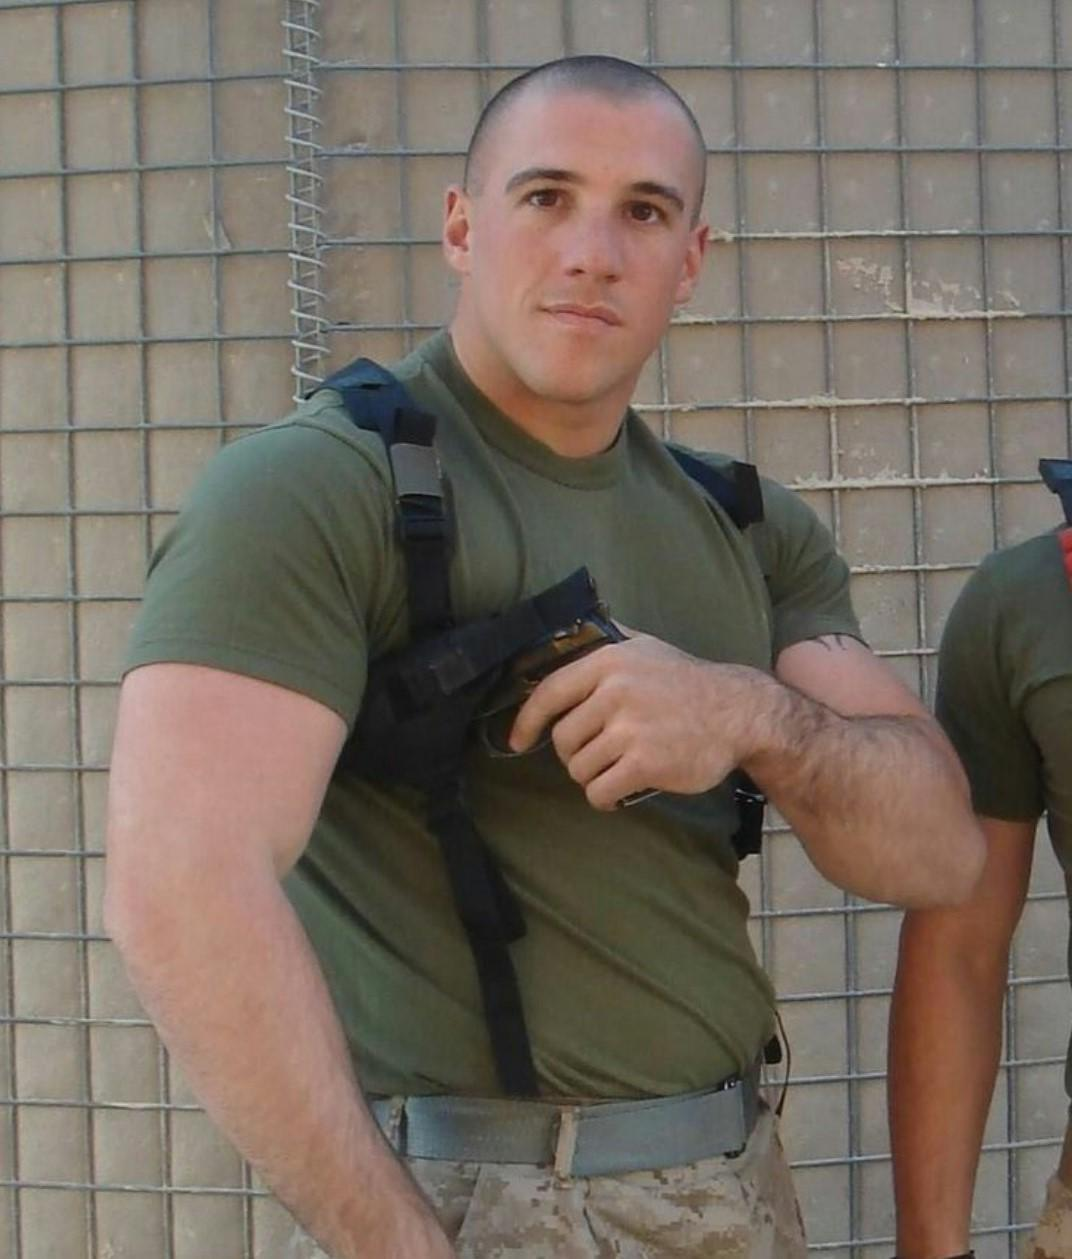 beefy-masculine-real-alpha-male-armed-soldier-hairy-arms-bulldog-security-officer